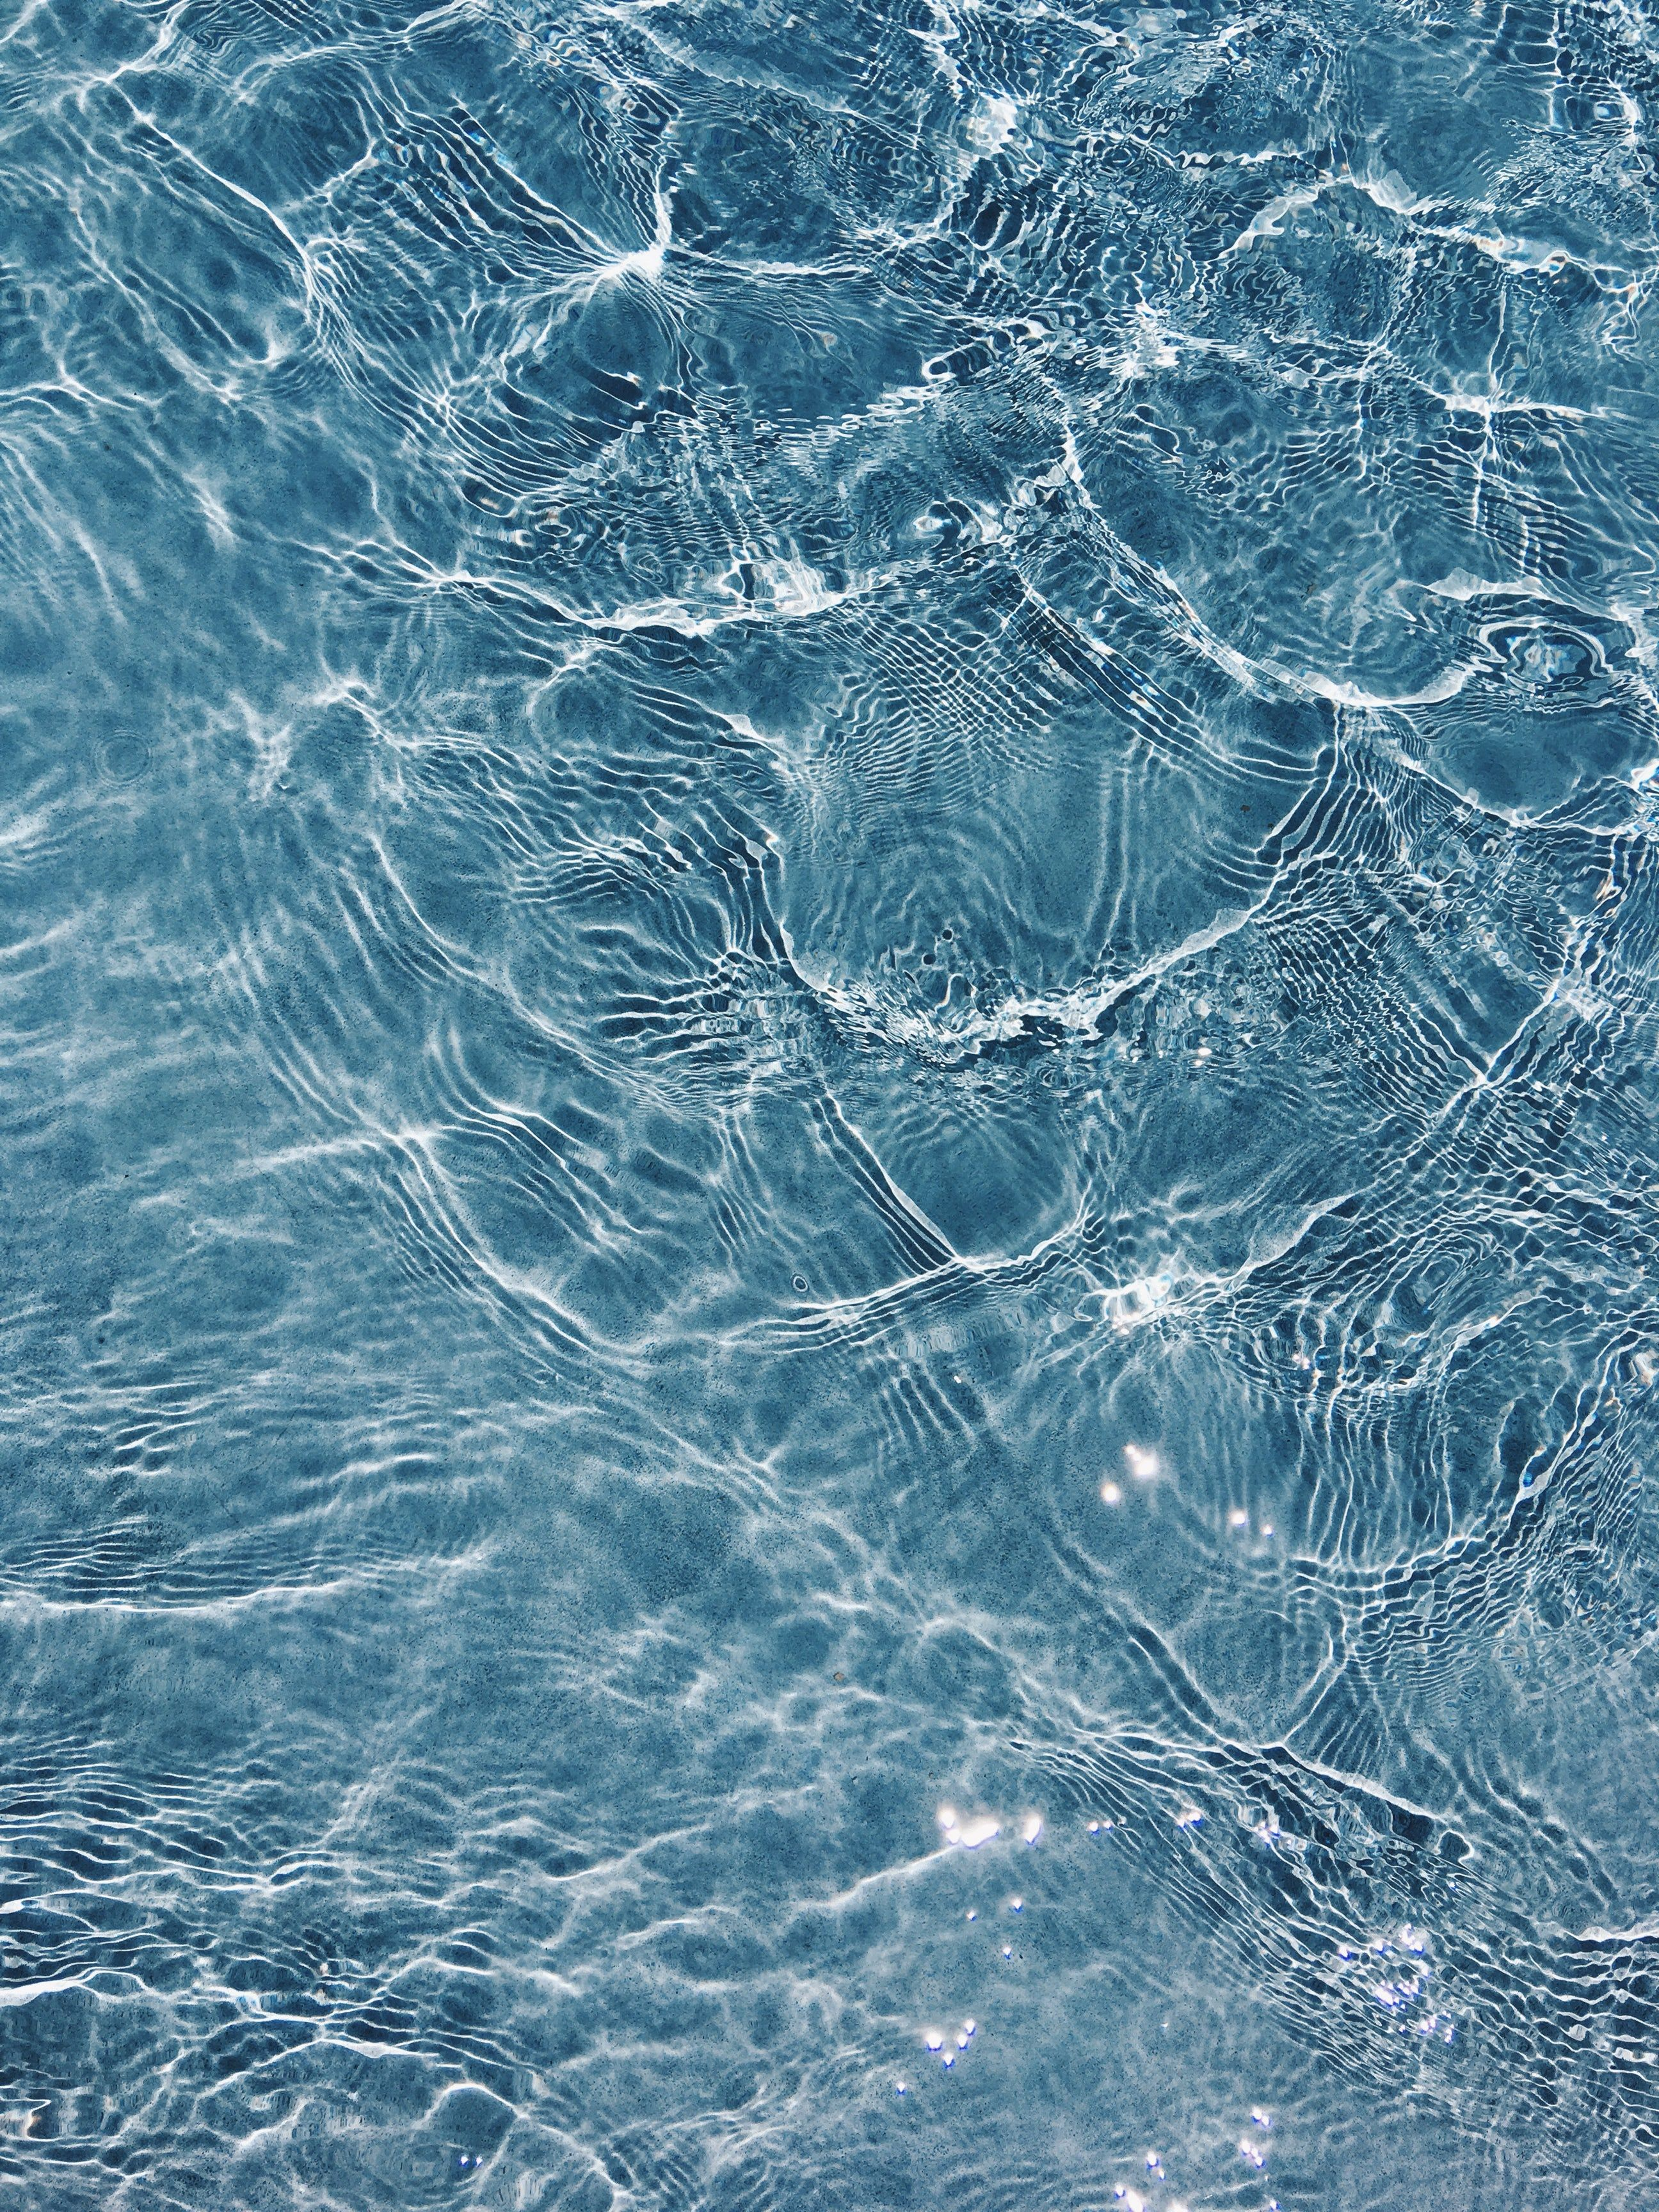 A Reflection And Ripples In A Swimming Pool